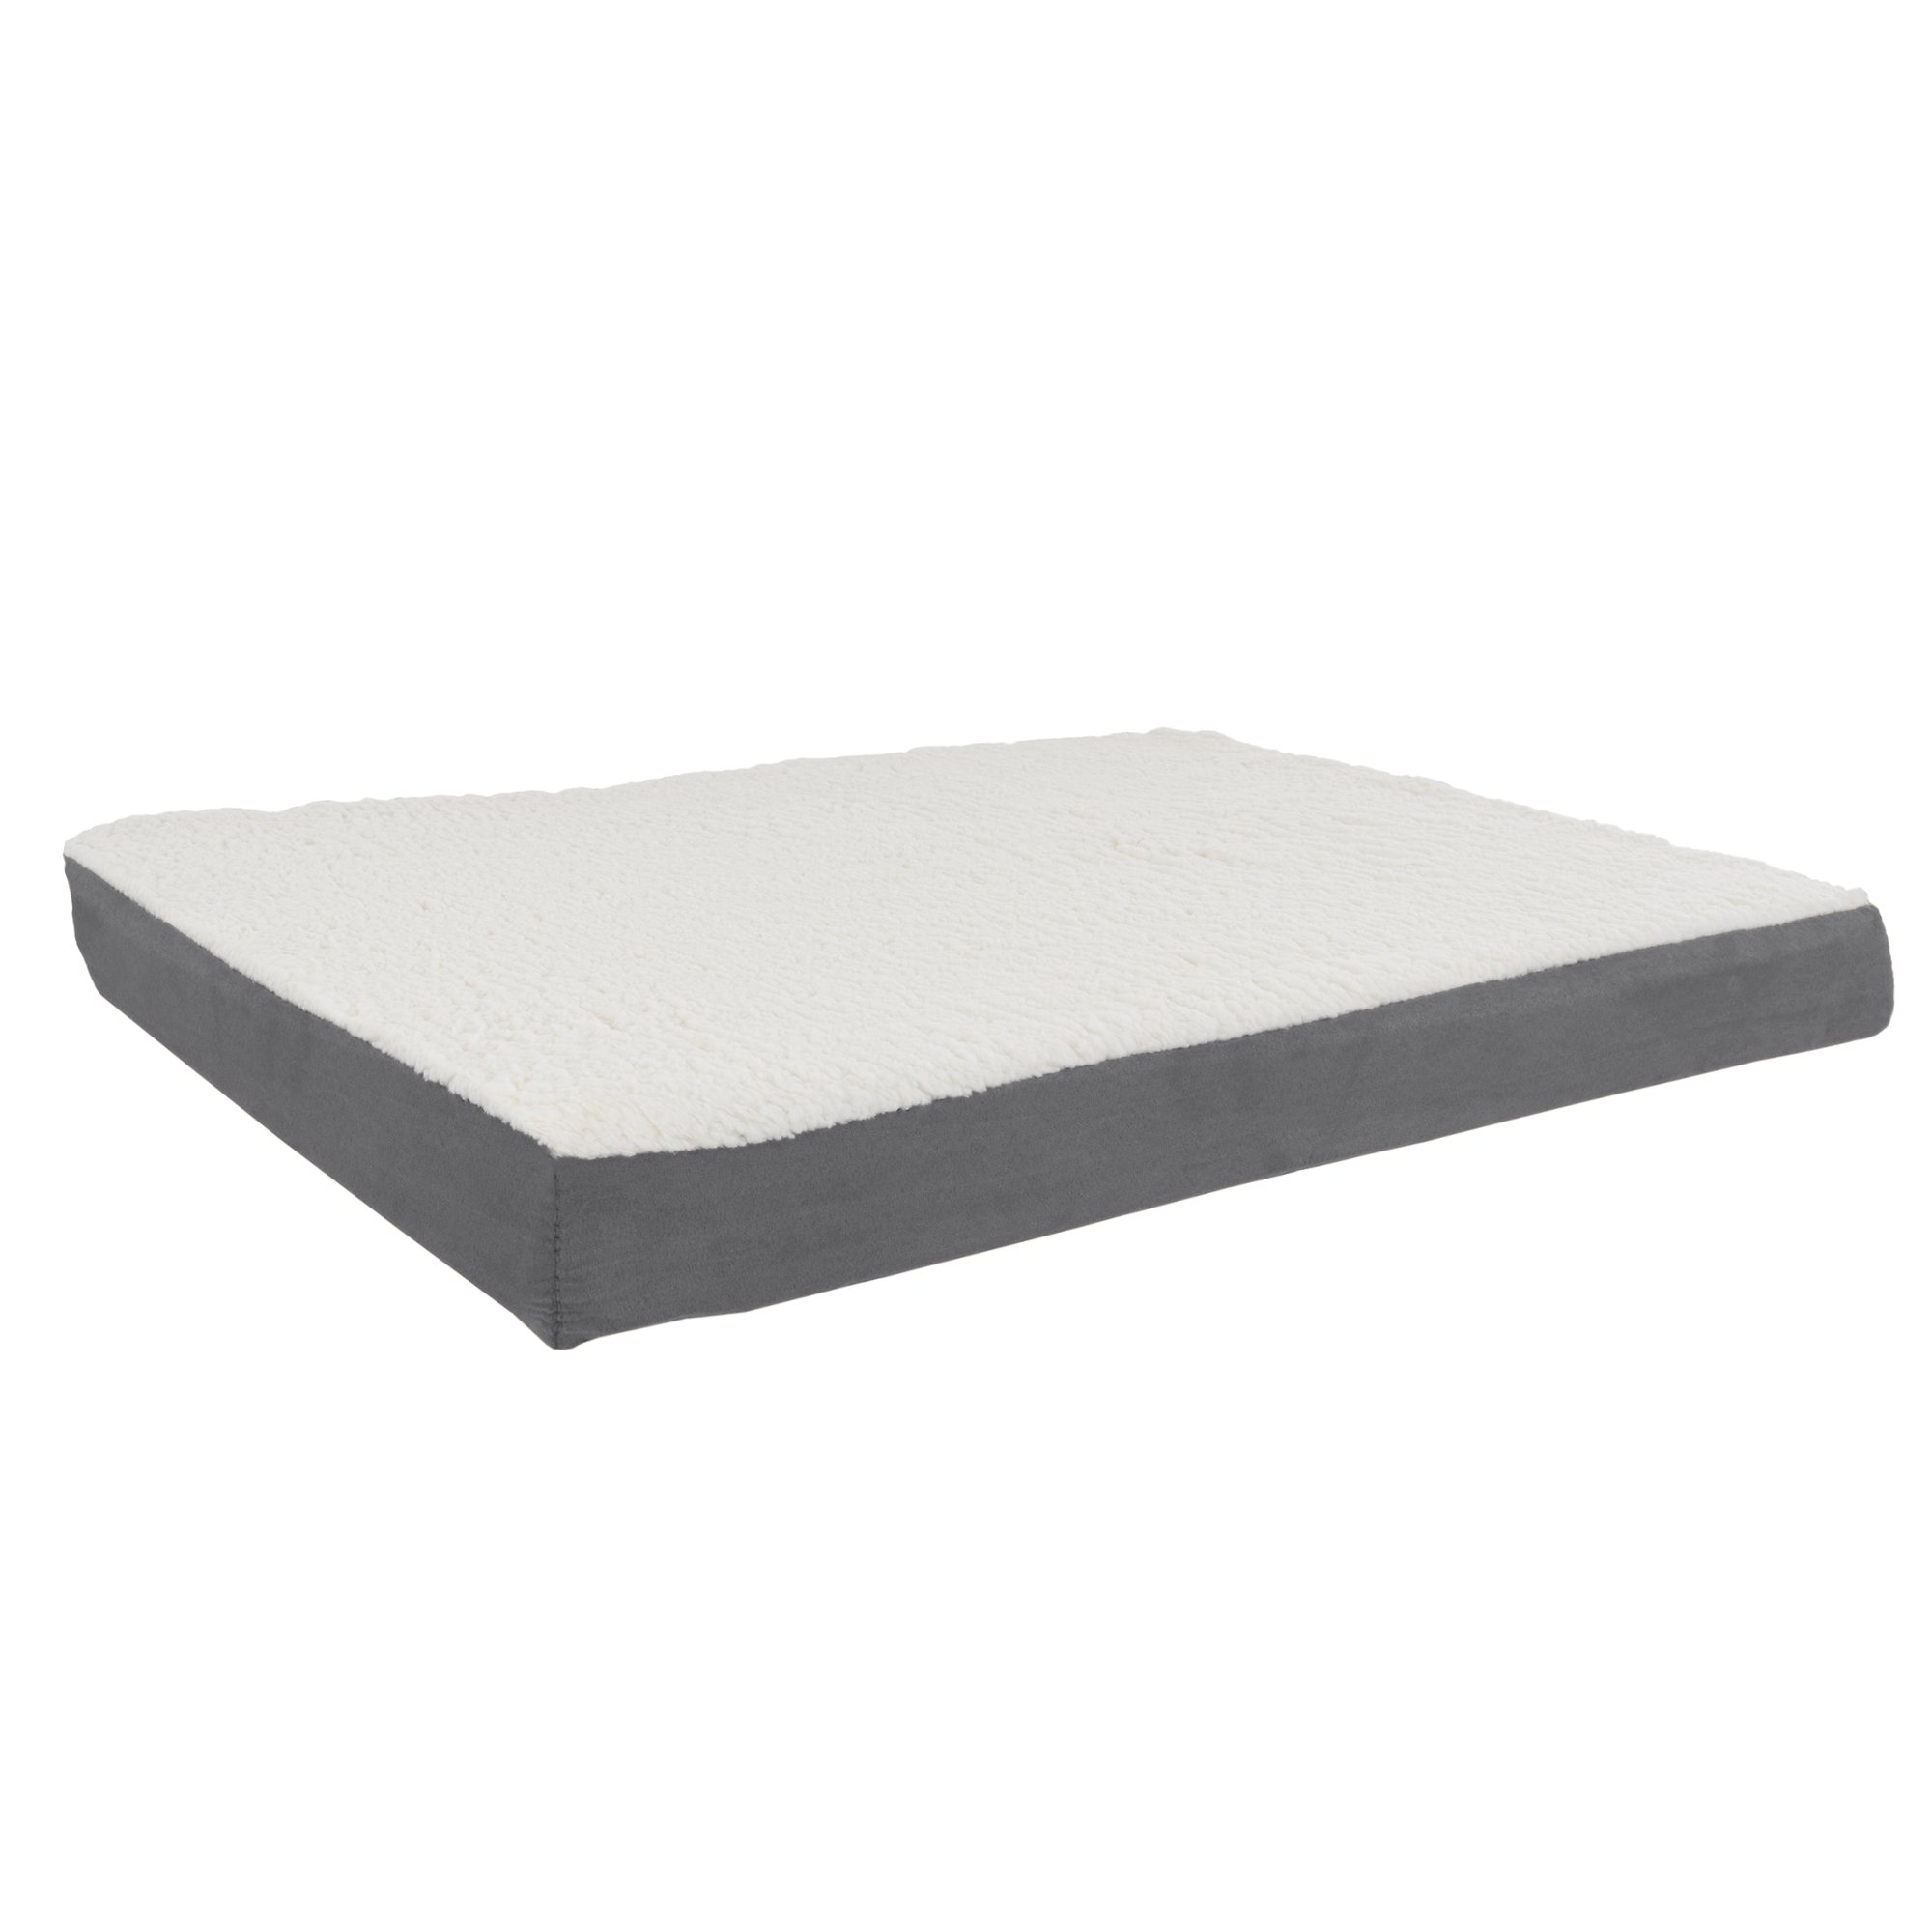 PETMAKER Orthopedic Sherpa Top Pet Bed with Memory Foam and Removable Cover 36x27x4 Gray by PETMAKER